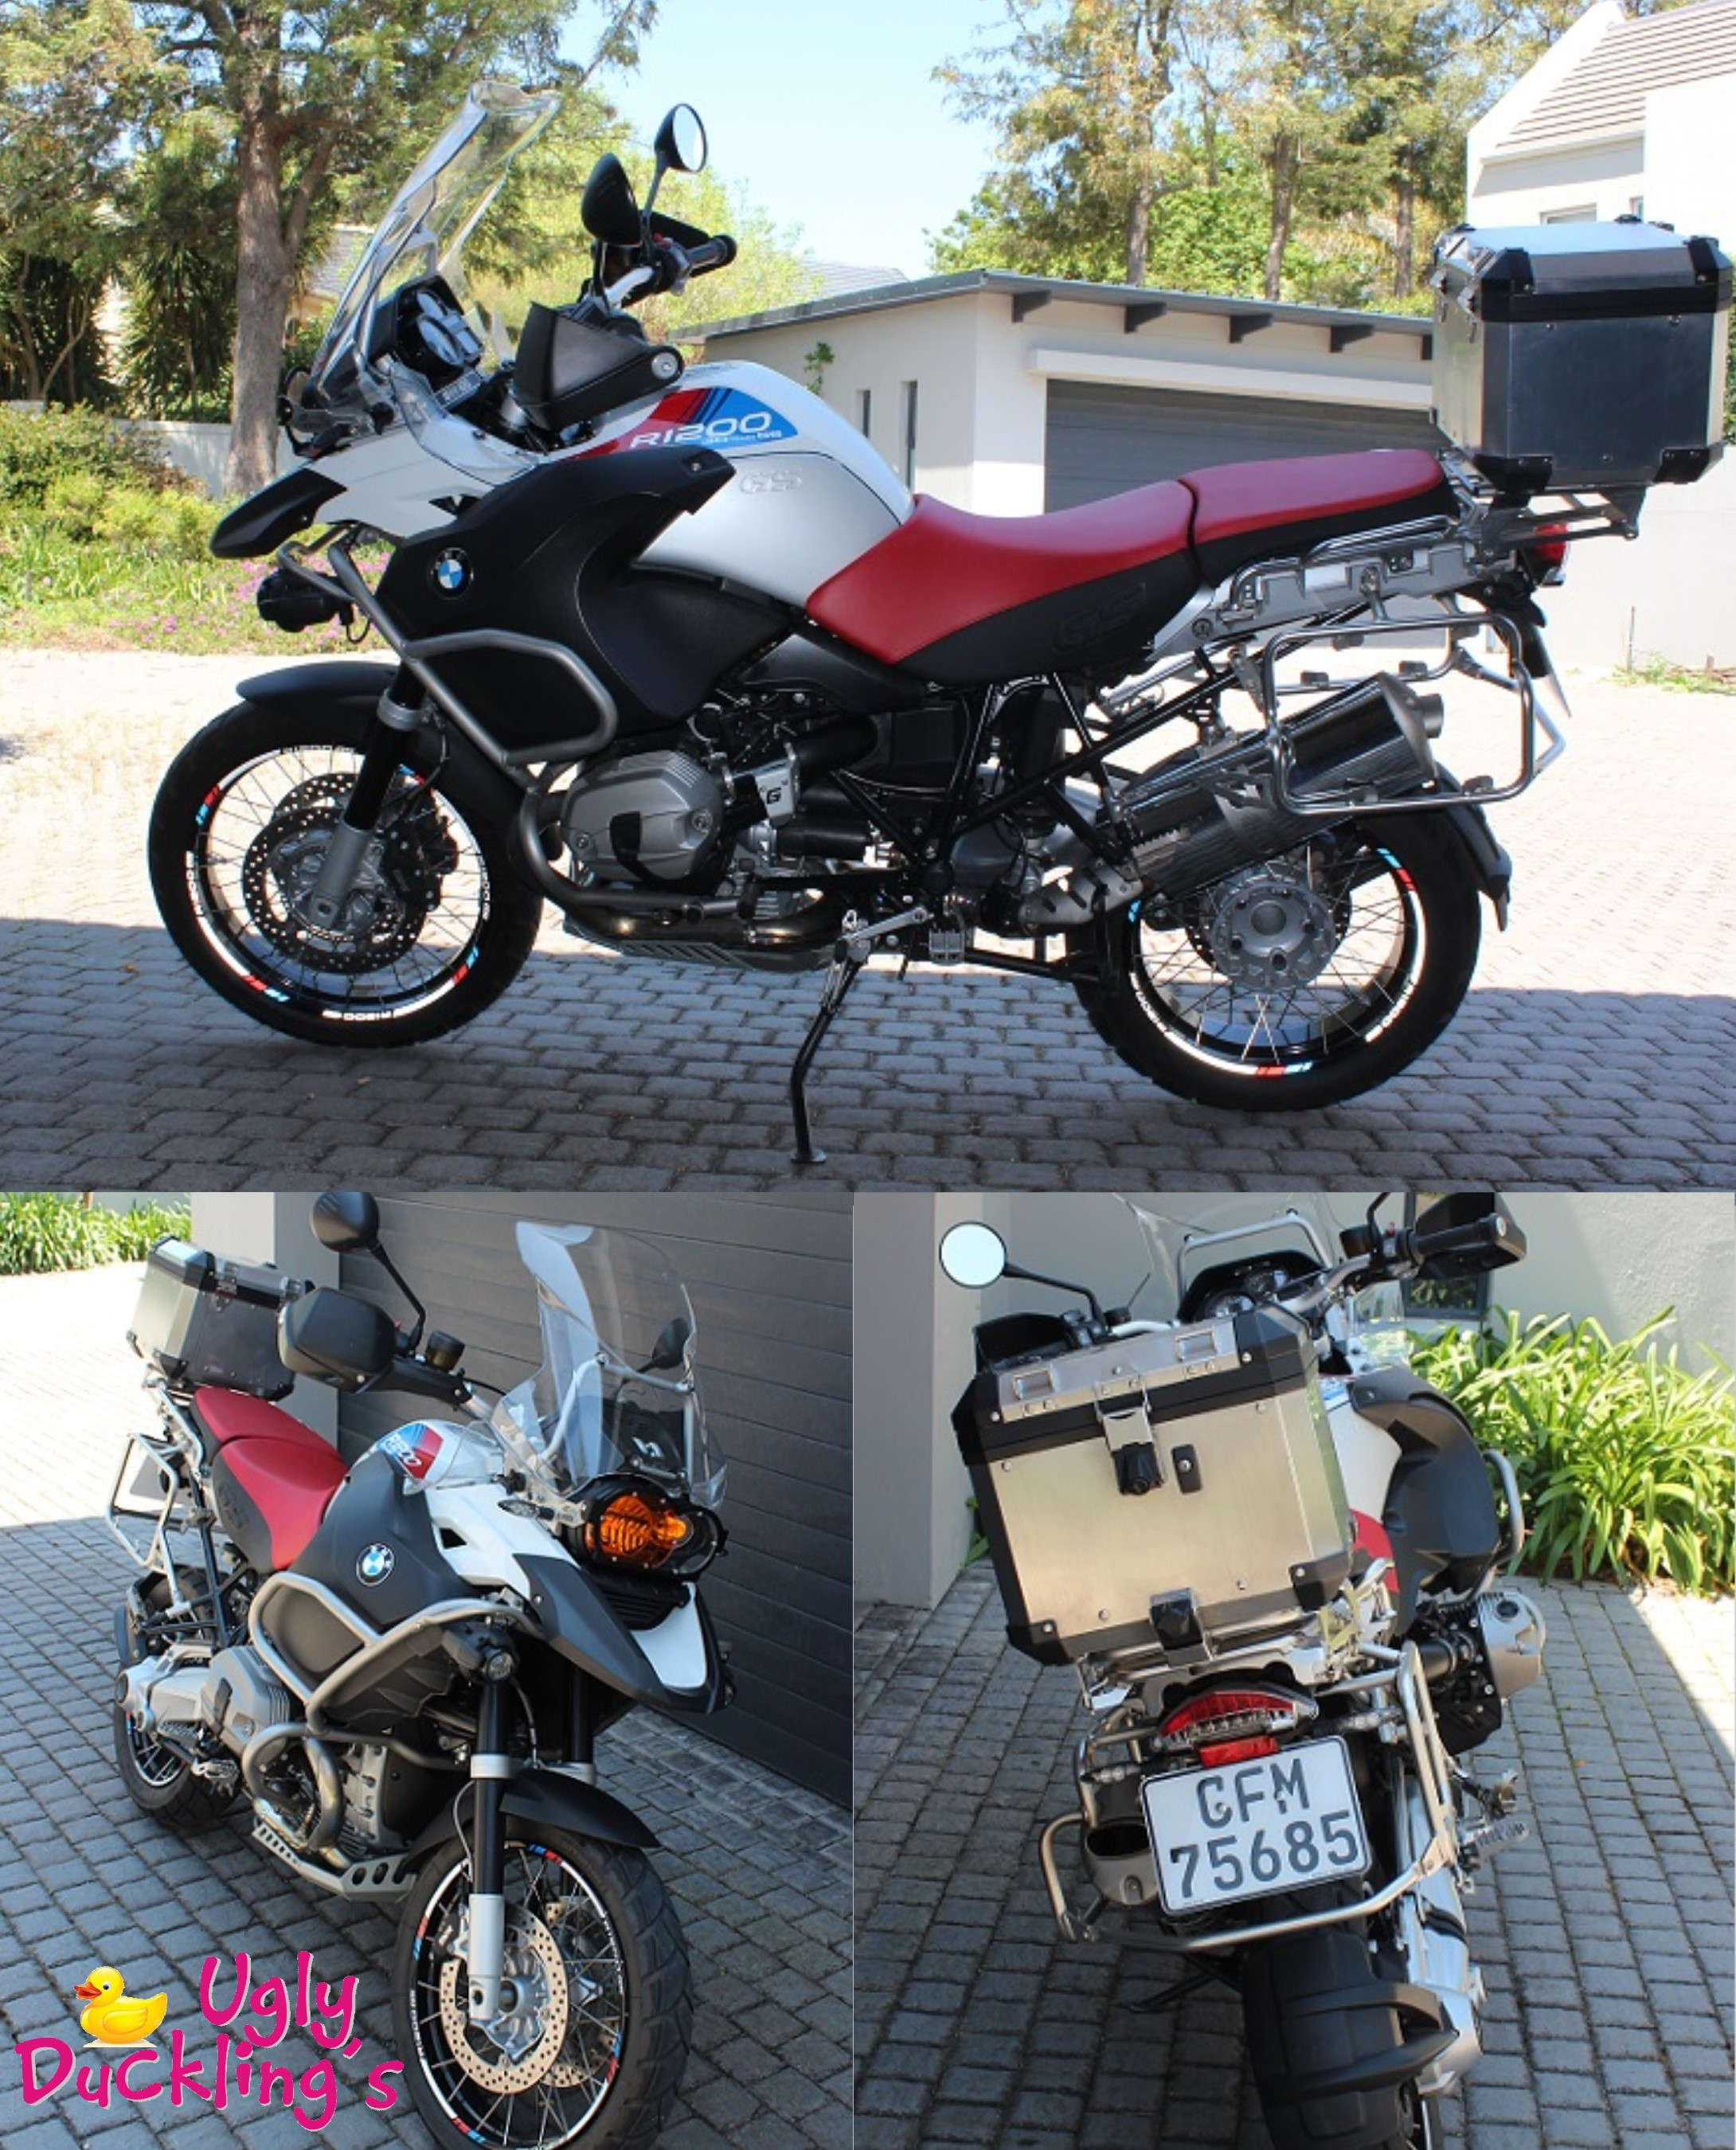 2010 BMW R1200R GS Adventure